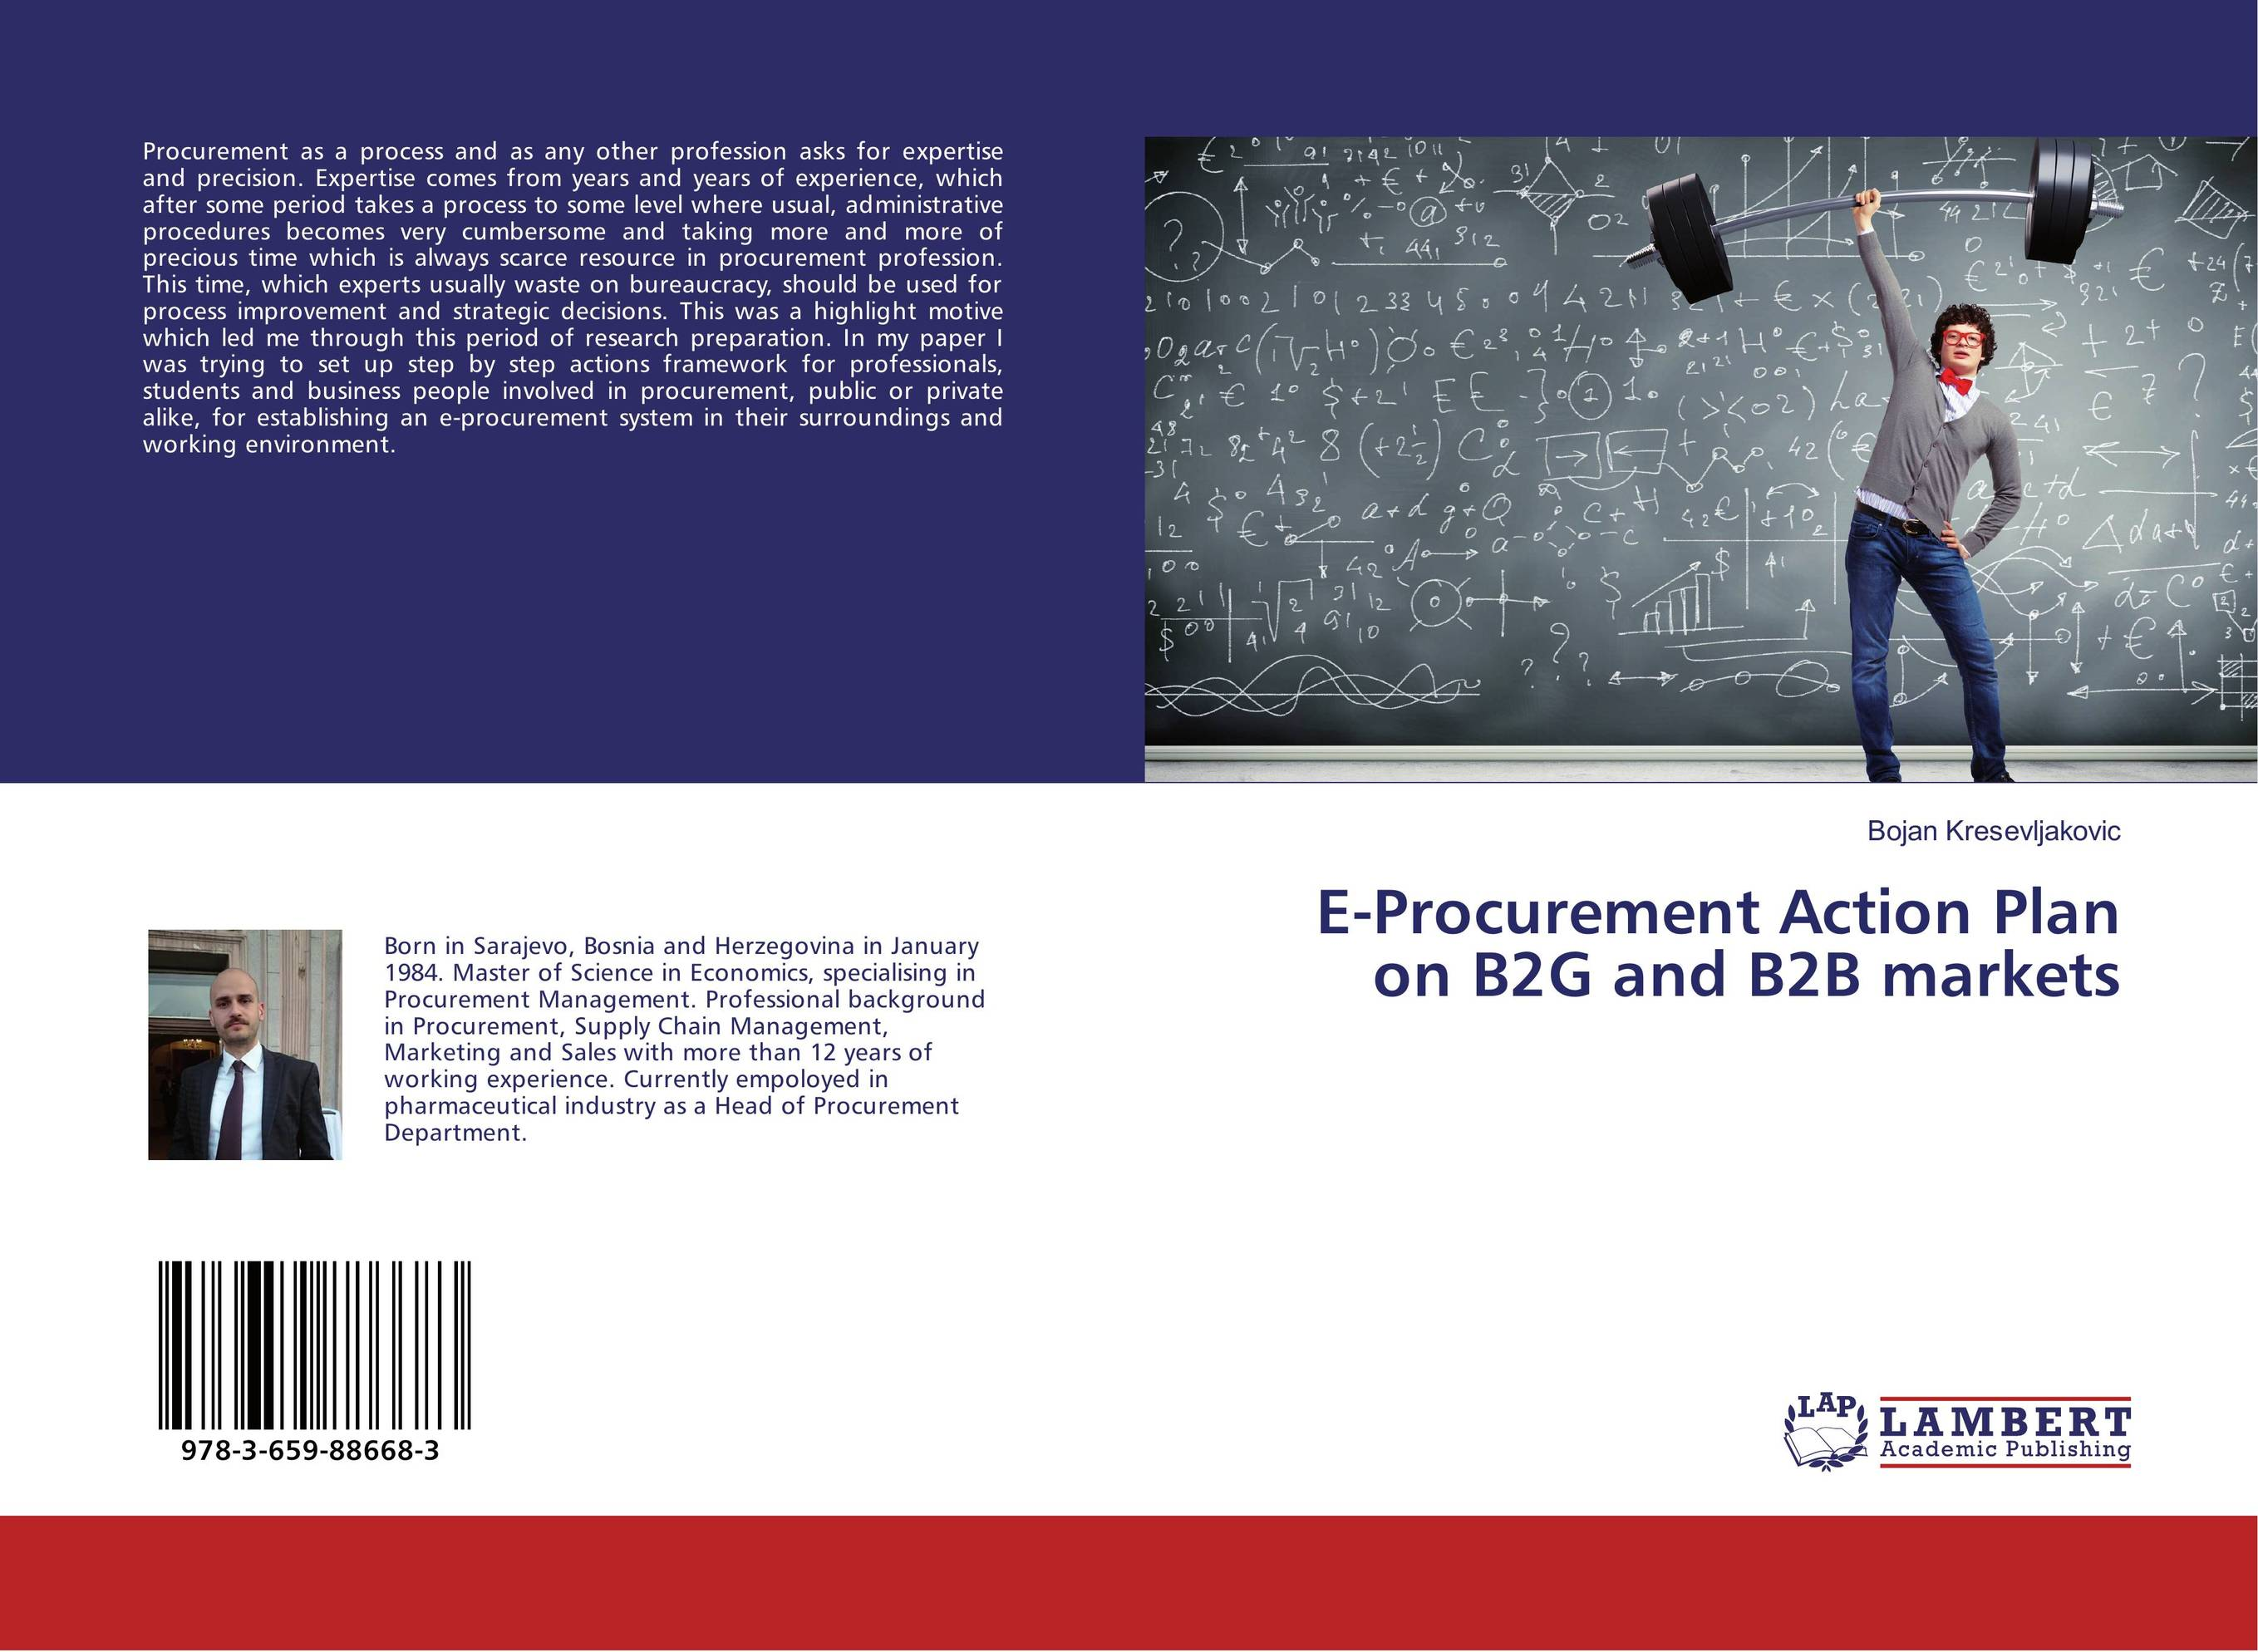 E-Procurement Action Plan on B2G and B2B markets more of me